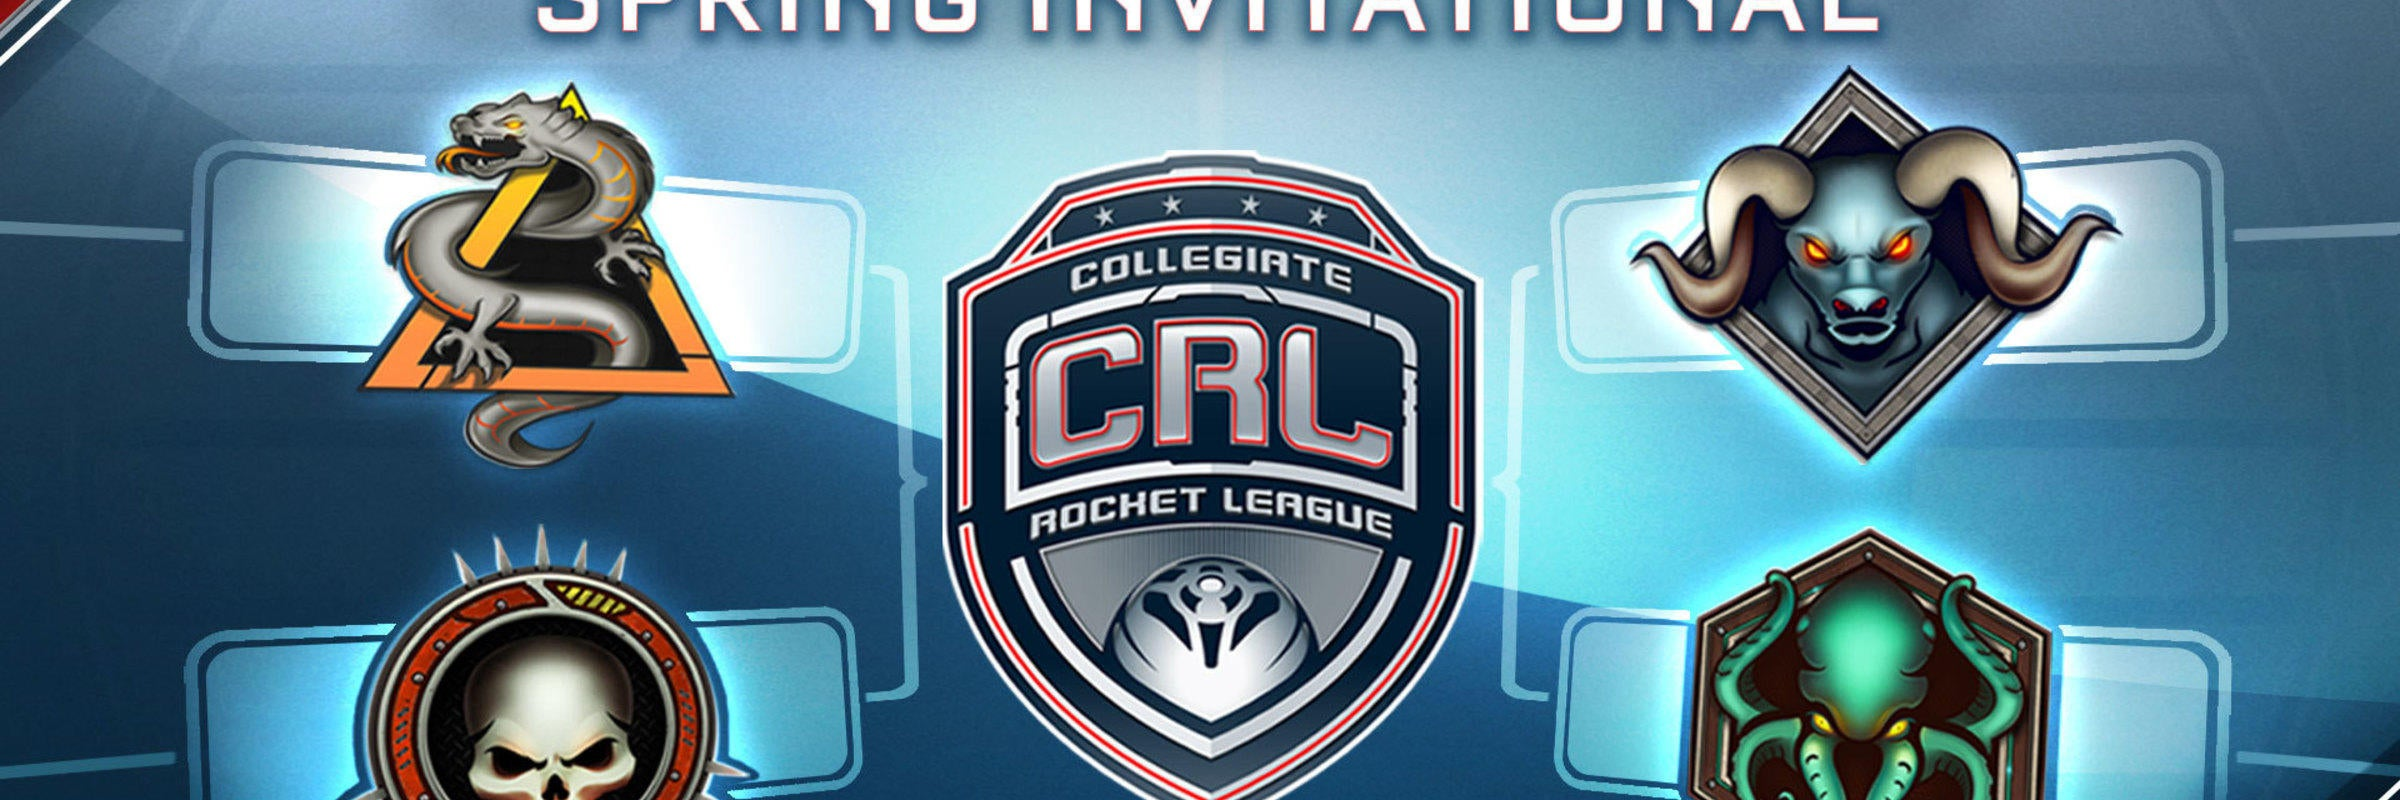 Collegiate Rocket League Heads to NCAA Final Four Fan Fest! Image